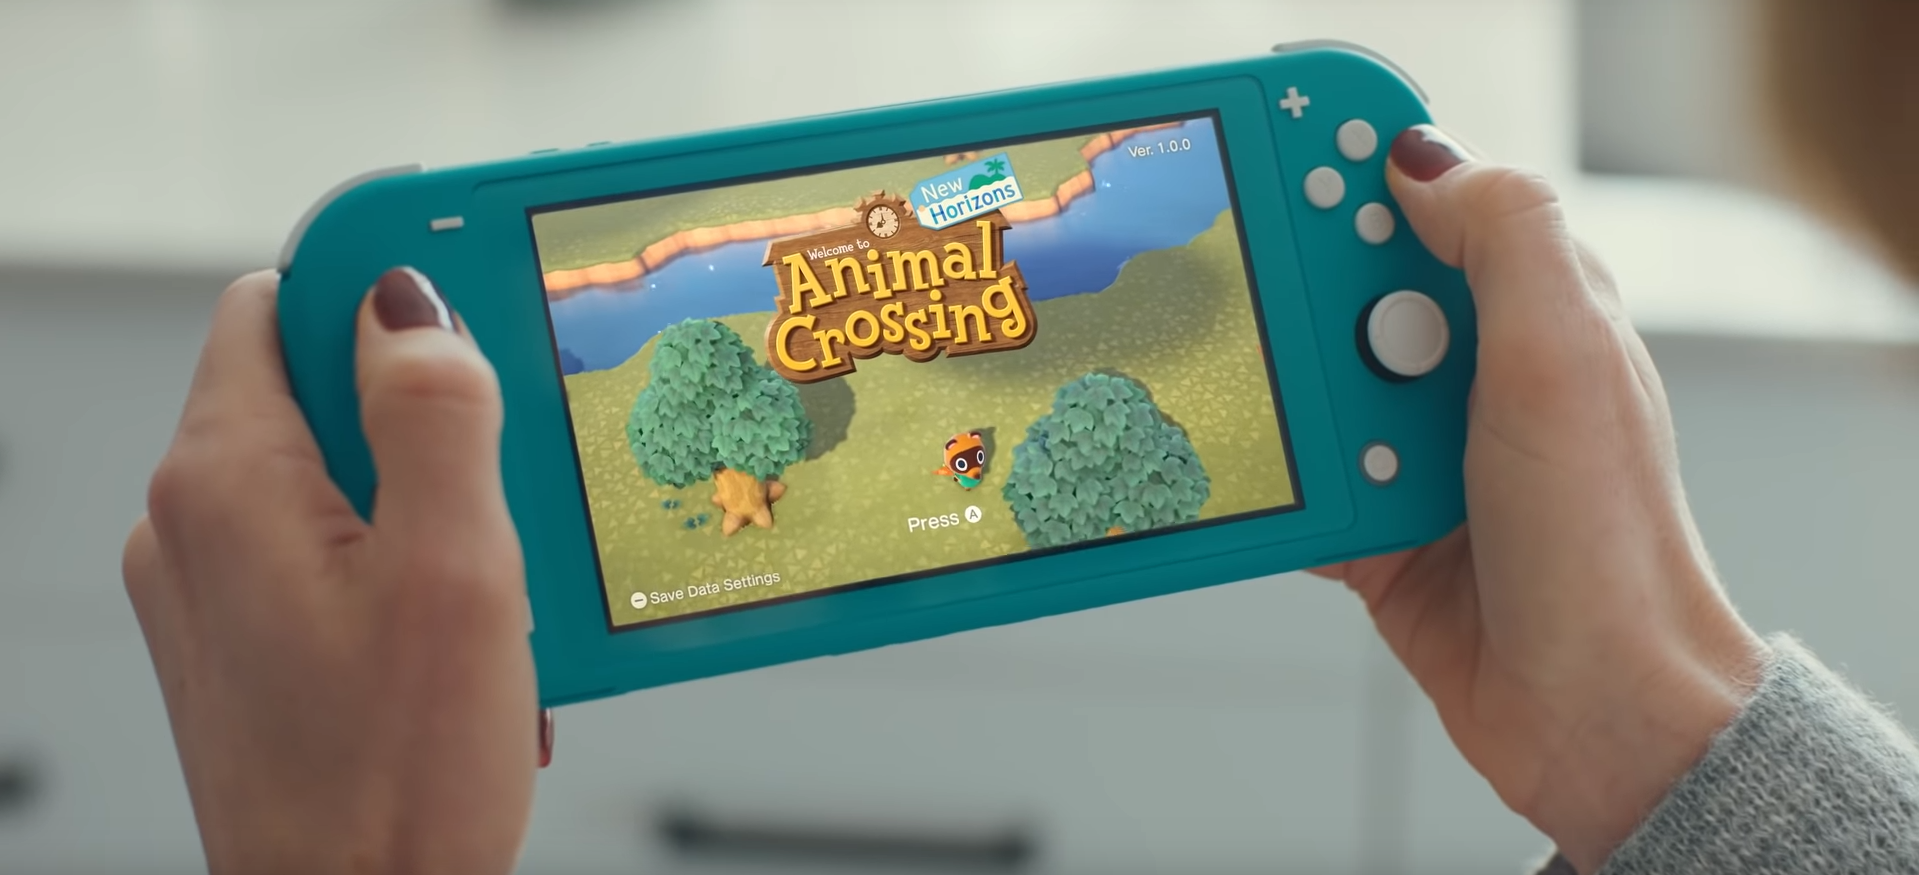 Animal Crossing New Horizons Gameplay Shown Off In New Commercial